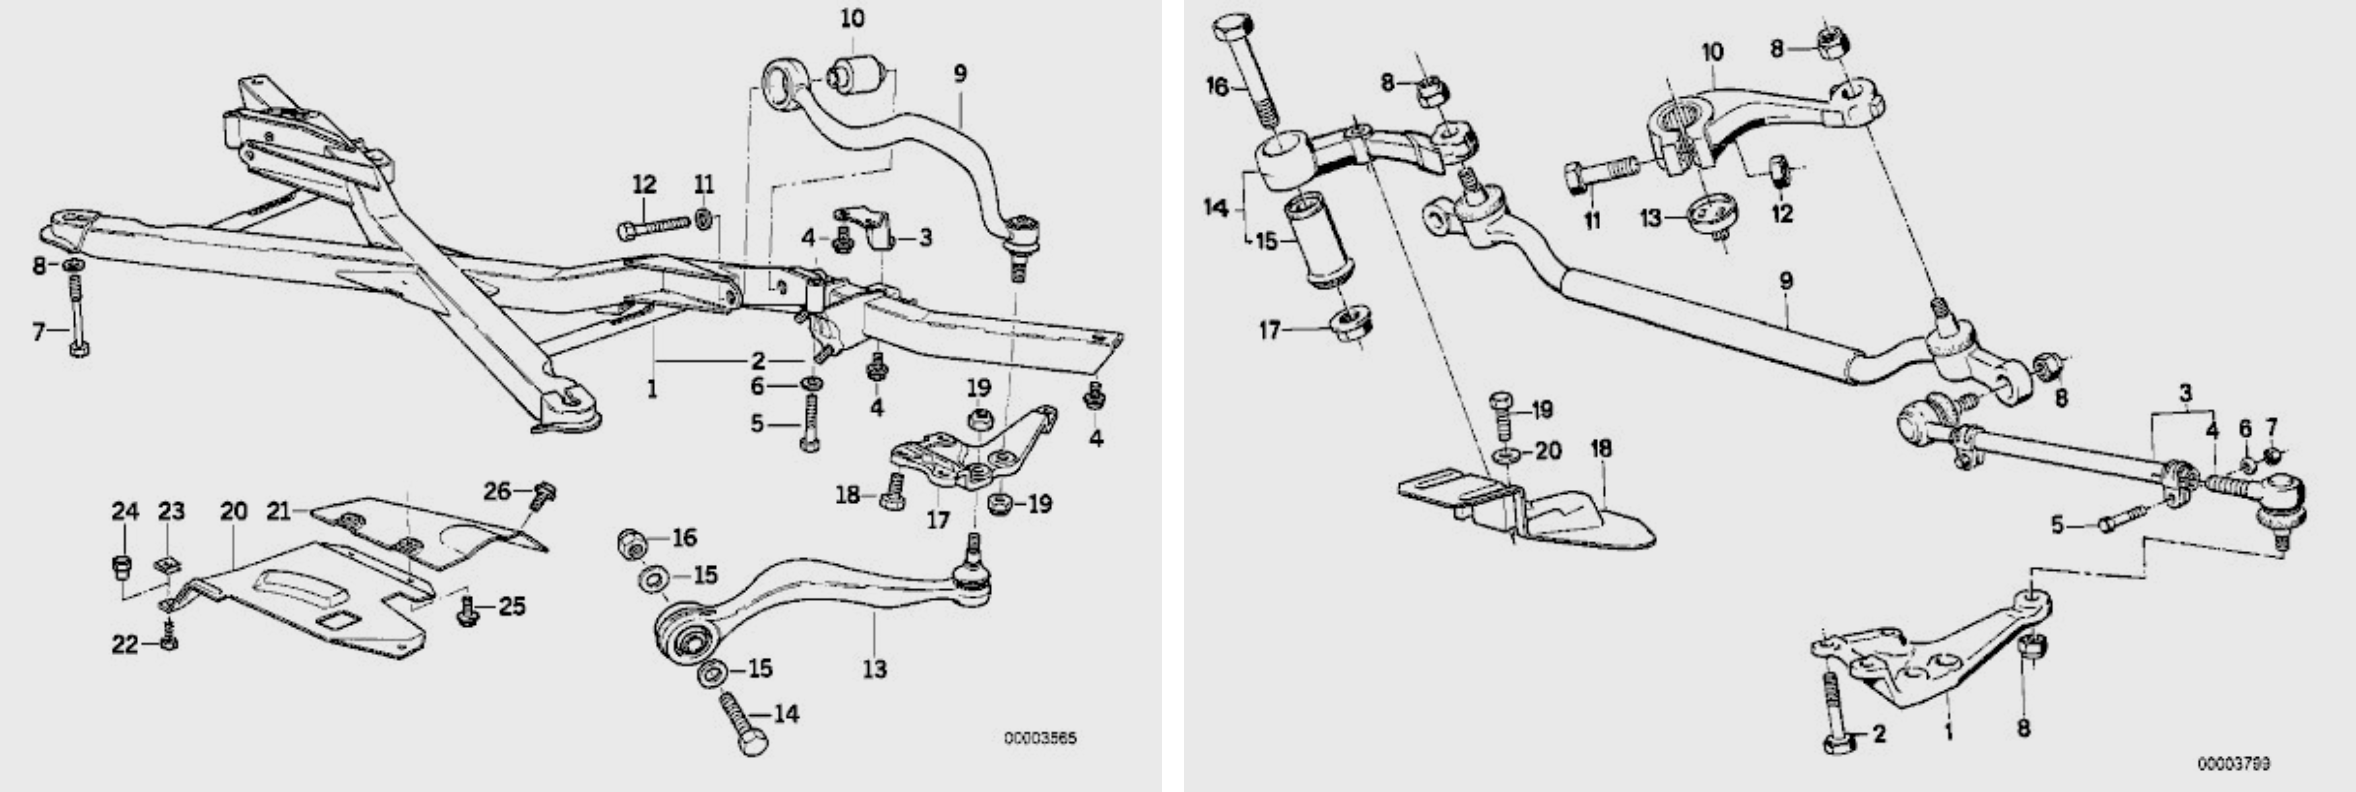 Timms Bmw E31 8 Series Common Problems M30 Engine Diagram Gets Bored And Seizes Up Sometimes All That Is Needed To Use Diagnostics Command The Pump Run For A Few Seconds Abs Block